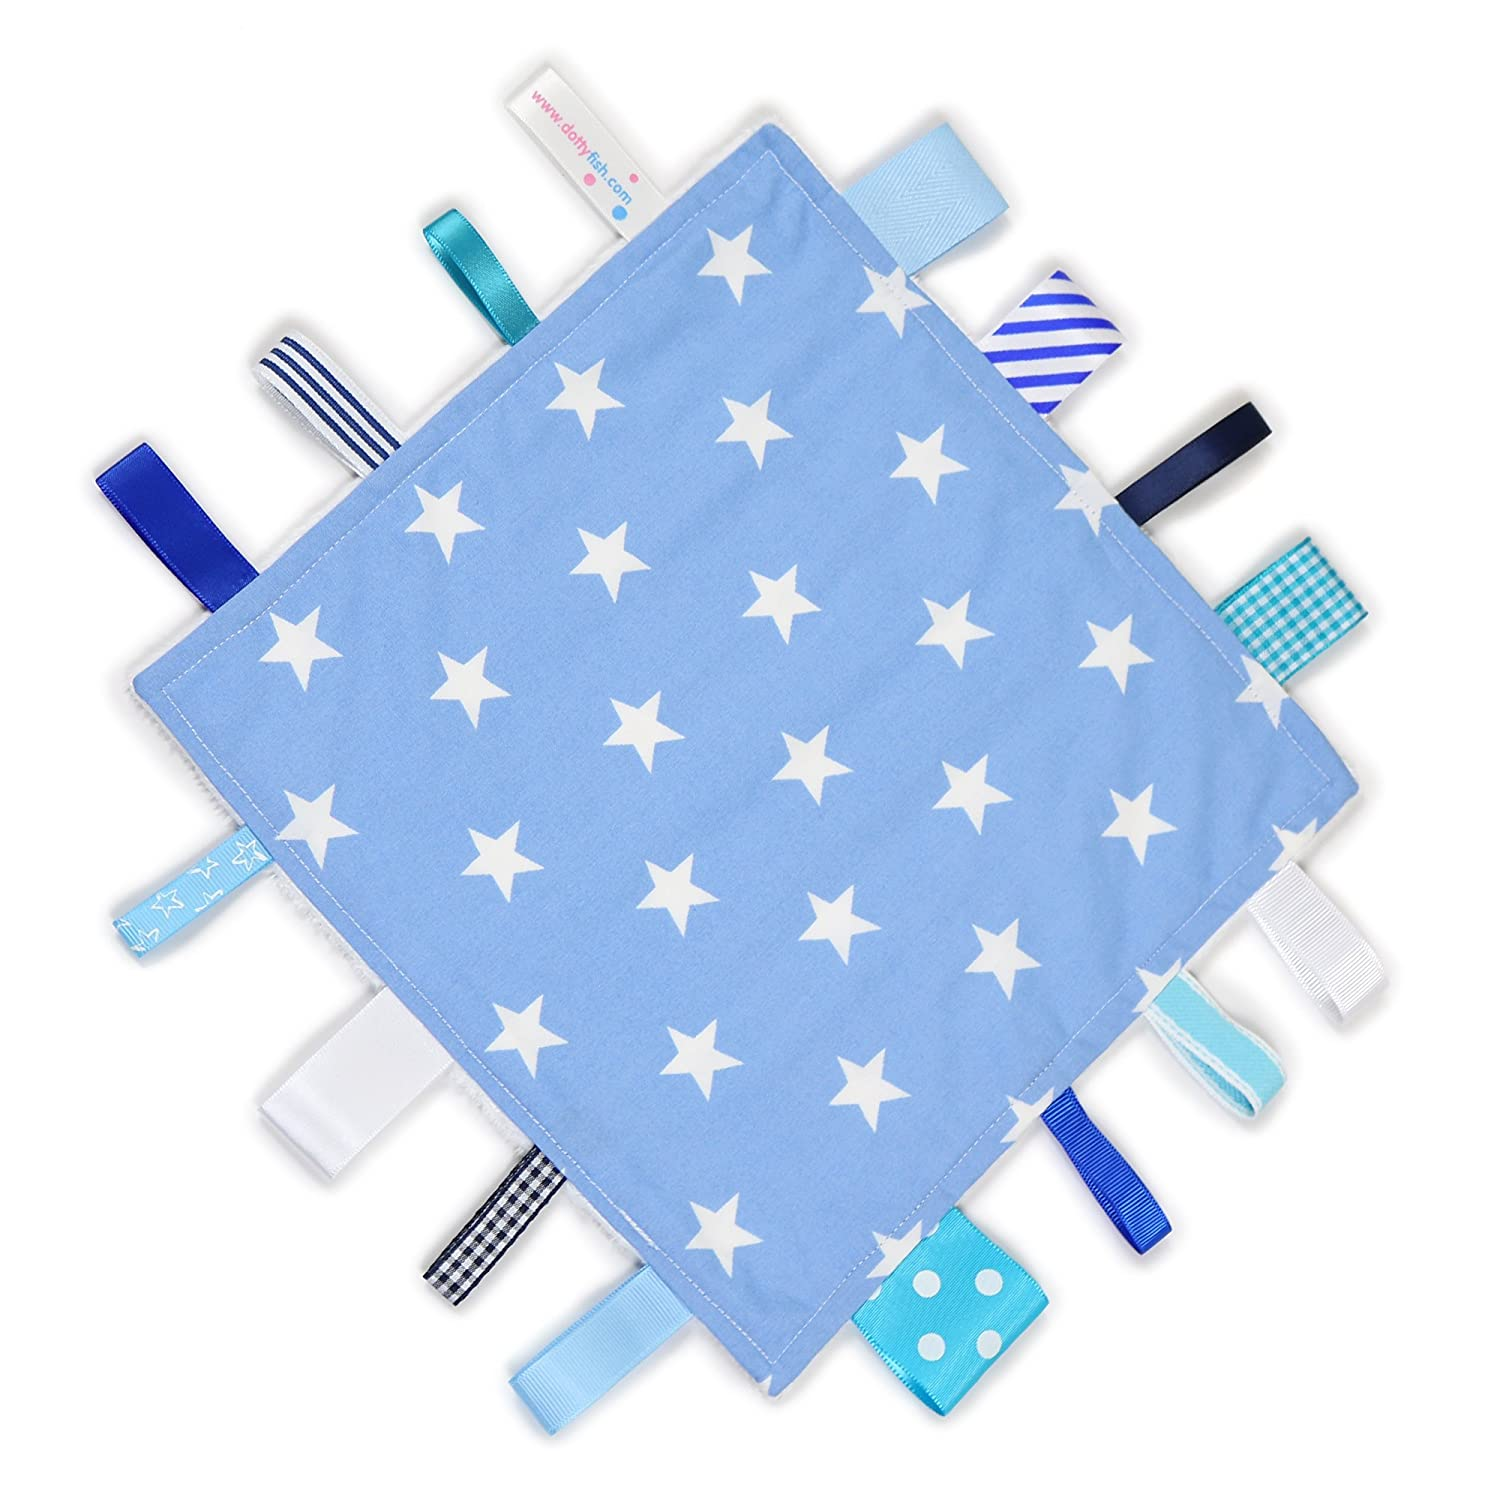 Blue with Nautical theme and Minky Fleece backing. Dotty Fish Baby Tag Blanket with Cuddle Soft Backing Handmade Baby Taggie Blanket Sensory Blanket for Baby Boys and Girls